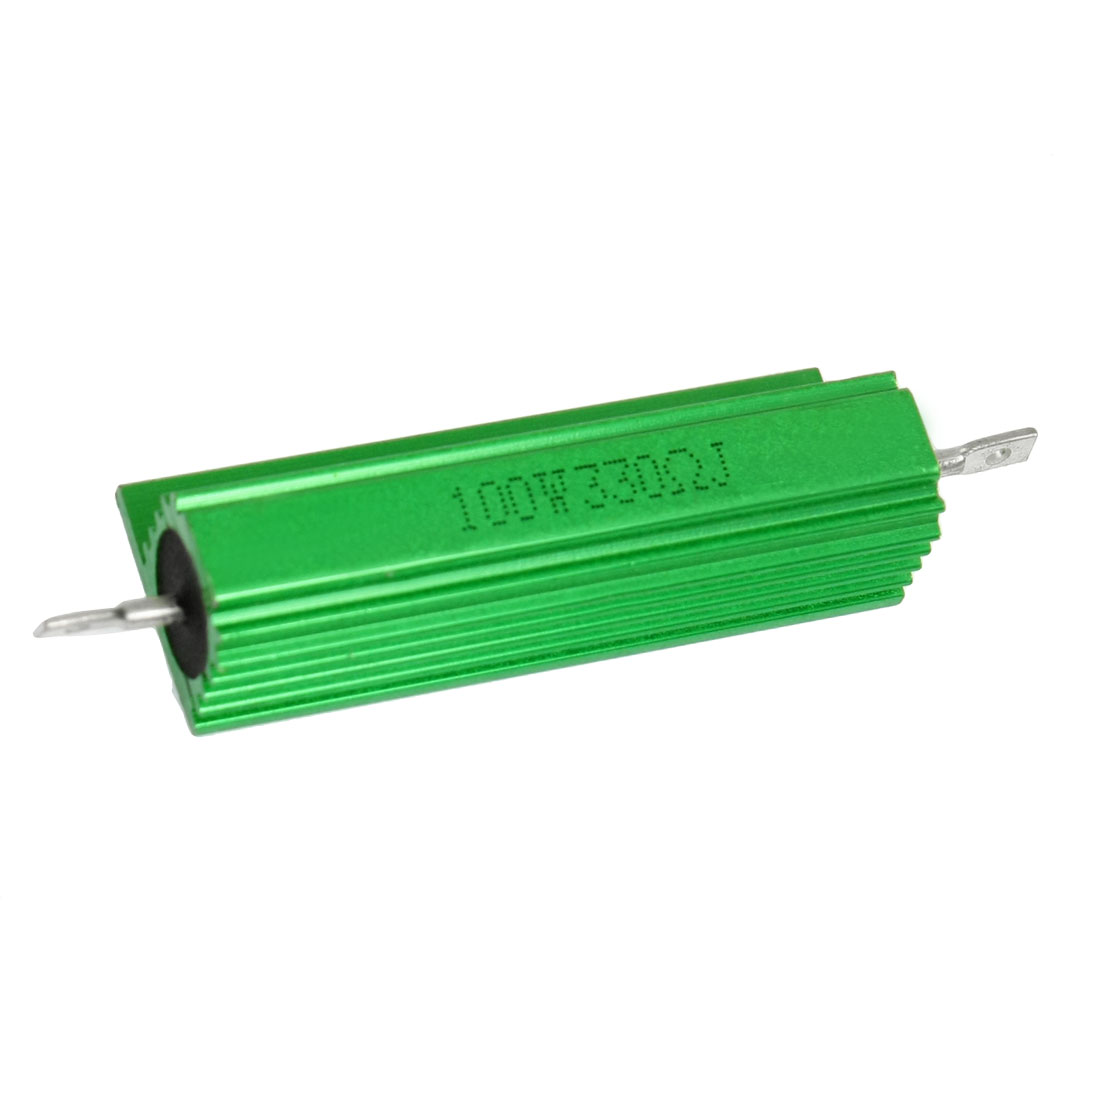 100W 330 Ohm Green Aluminum Shell Wire Wound Housed Resistor